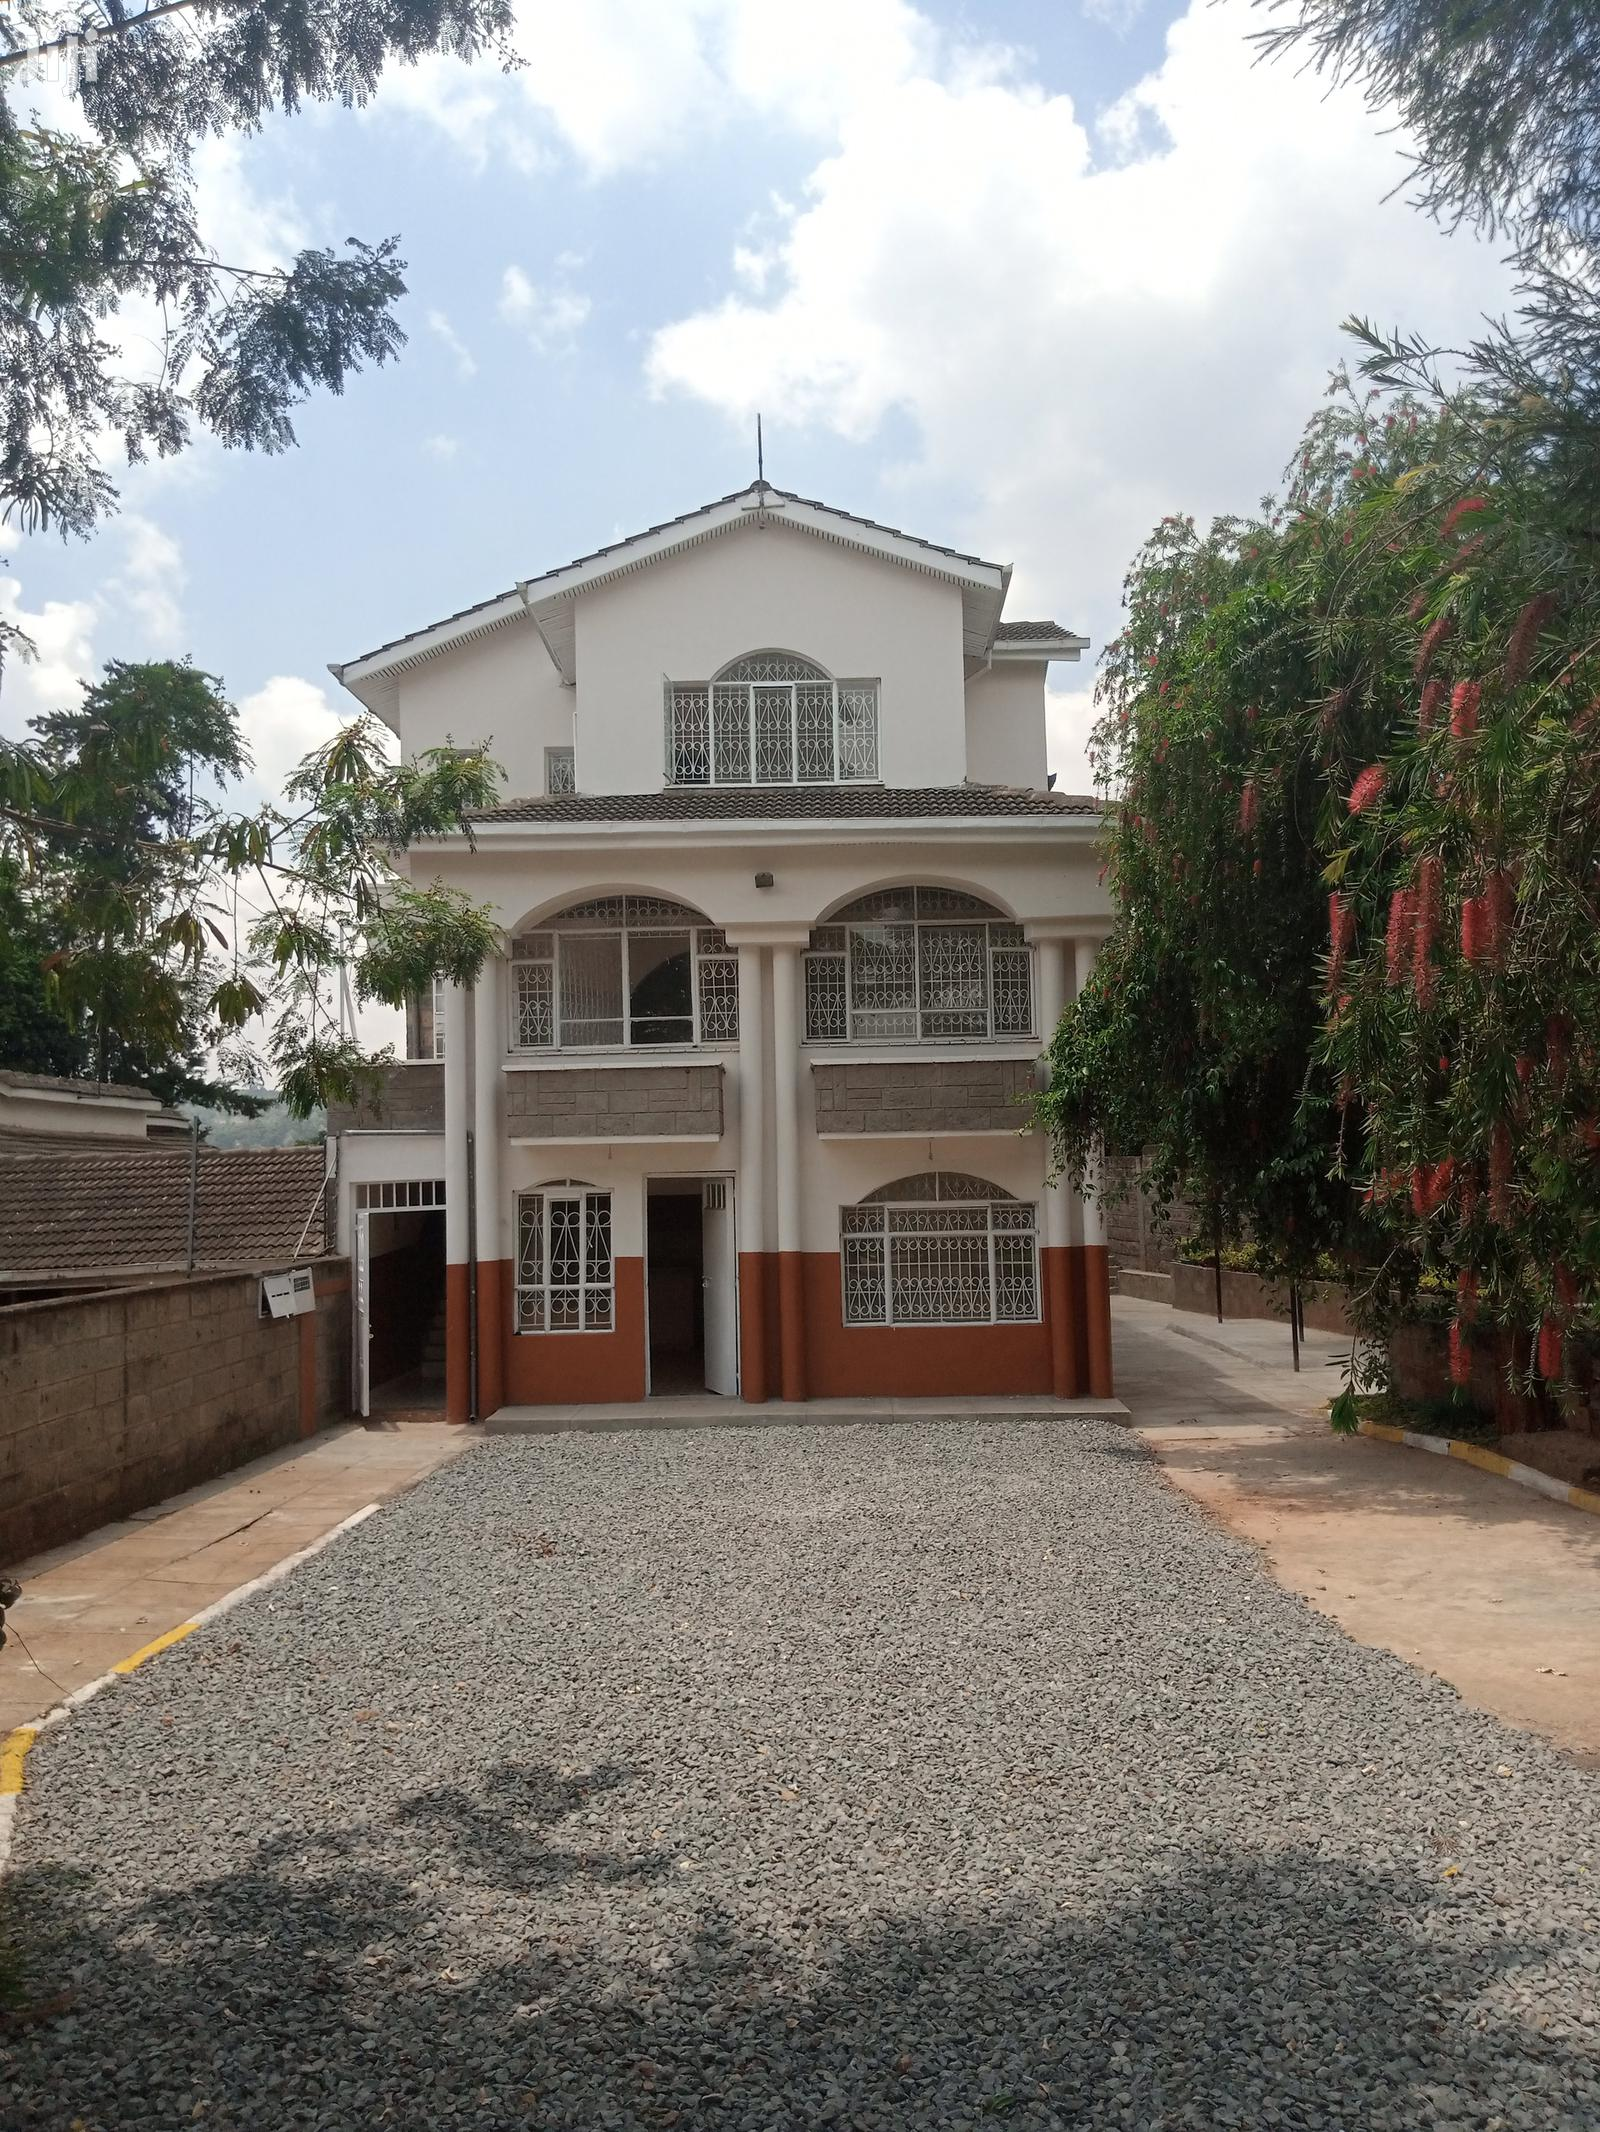 2 Bedroom Apartment In Karen Along Rhino Park Rd For Rent